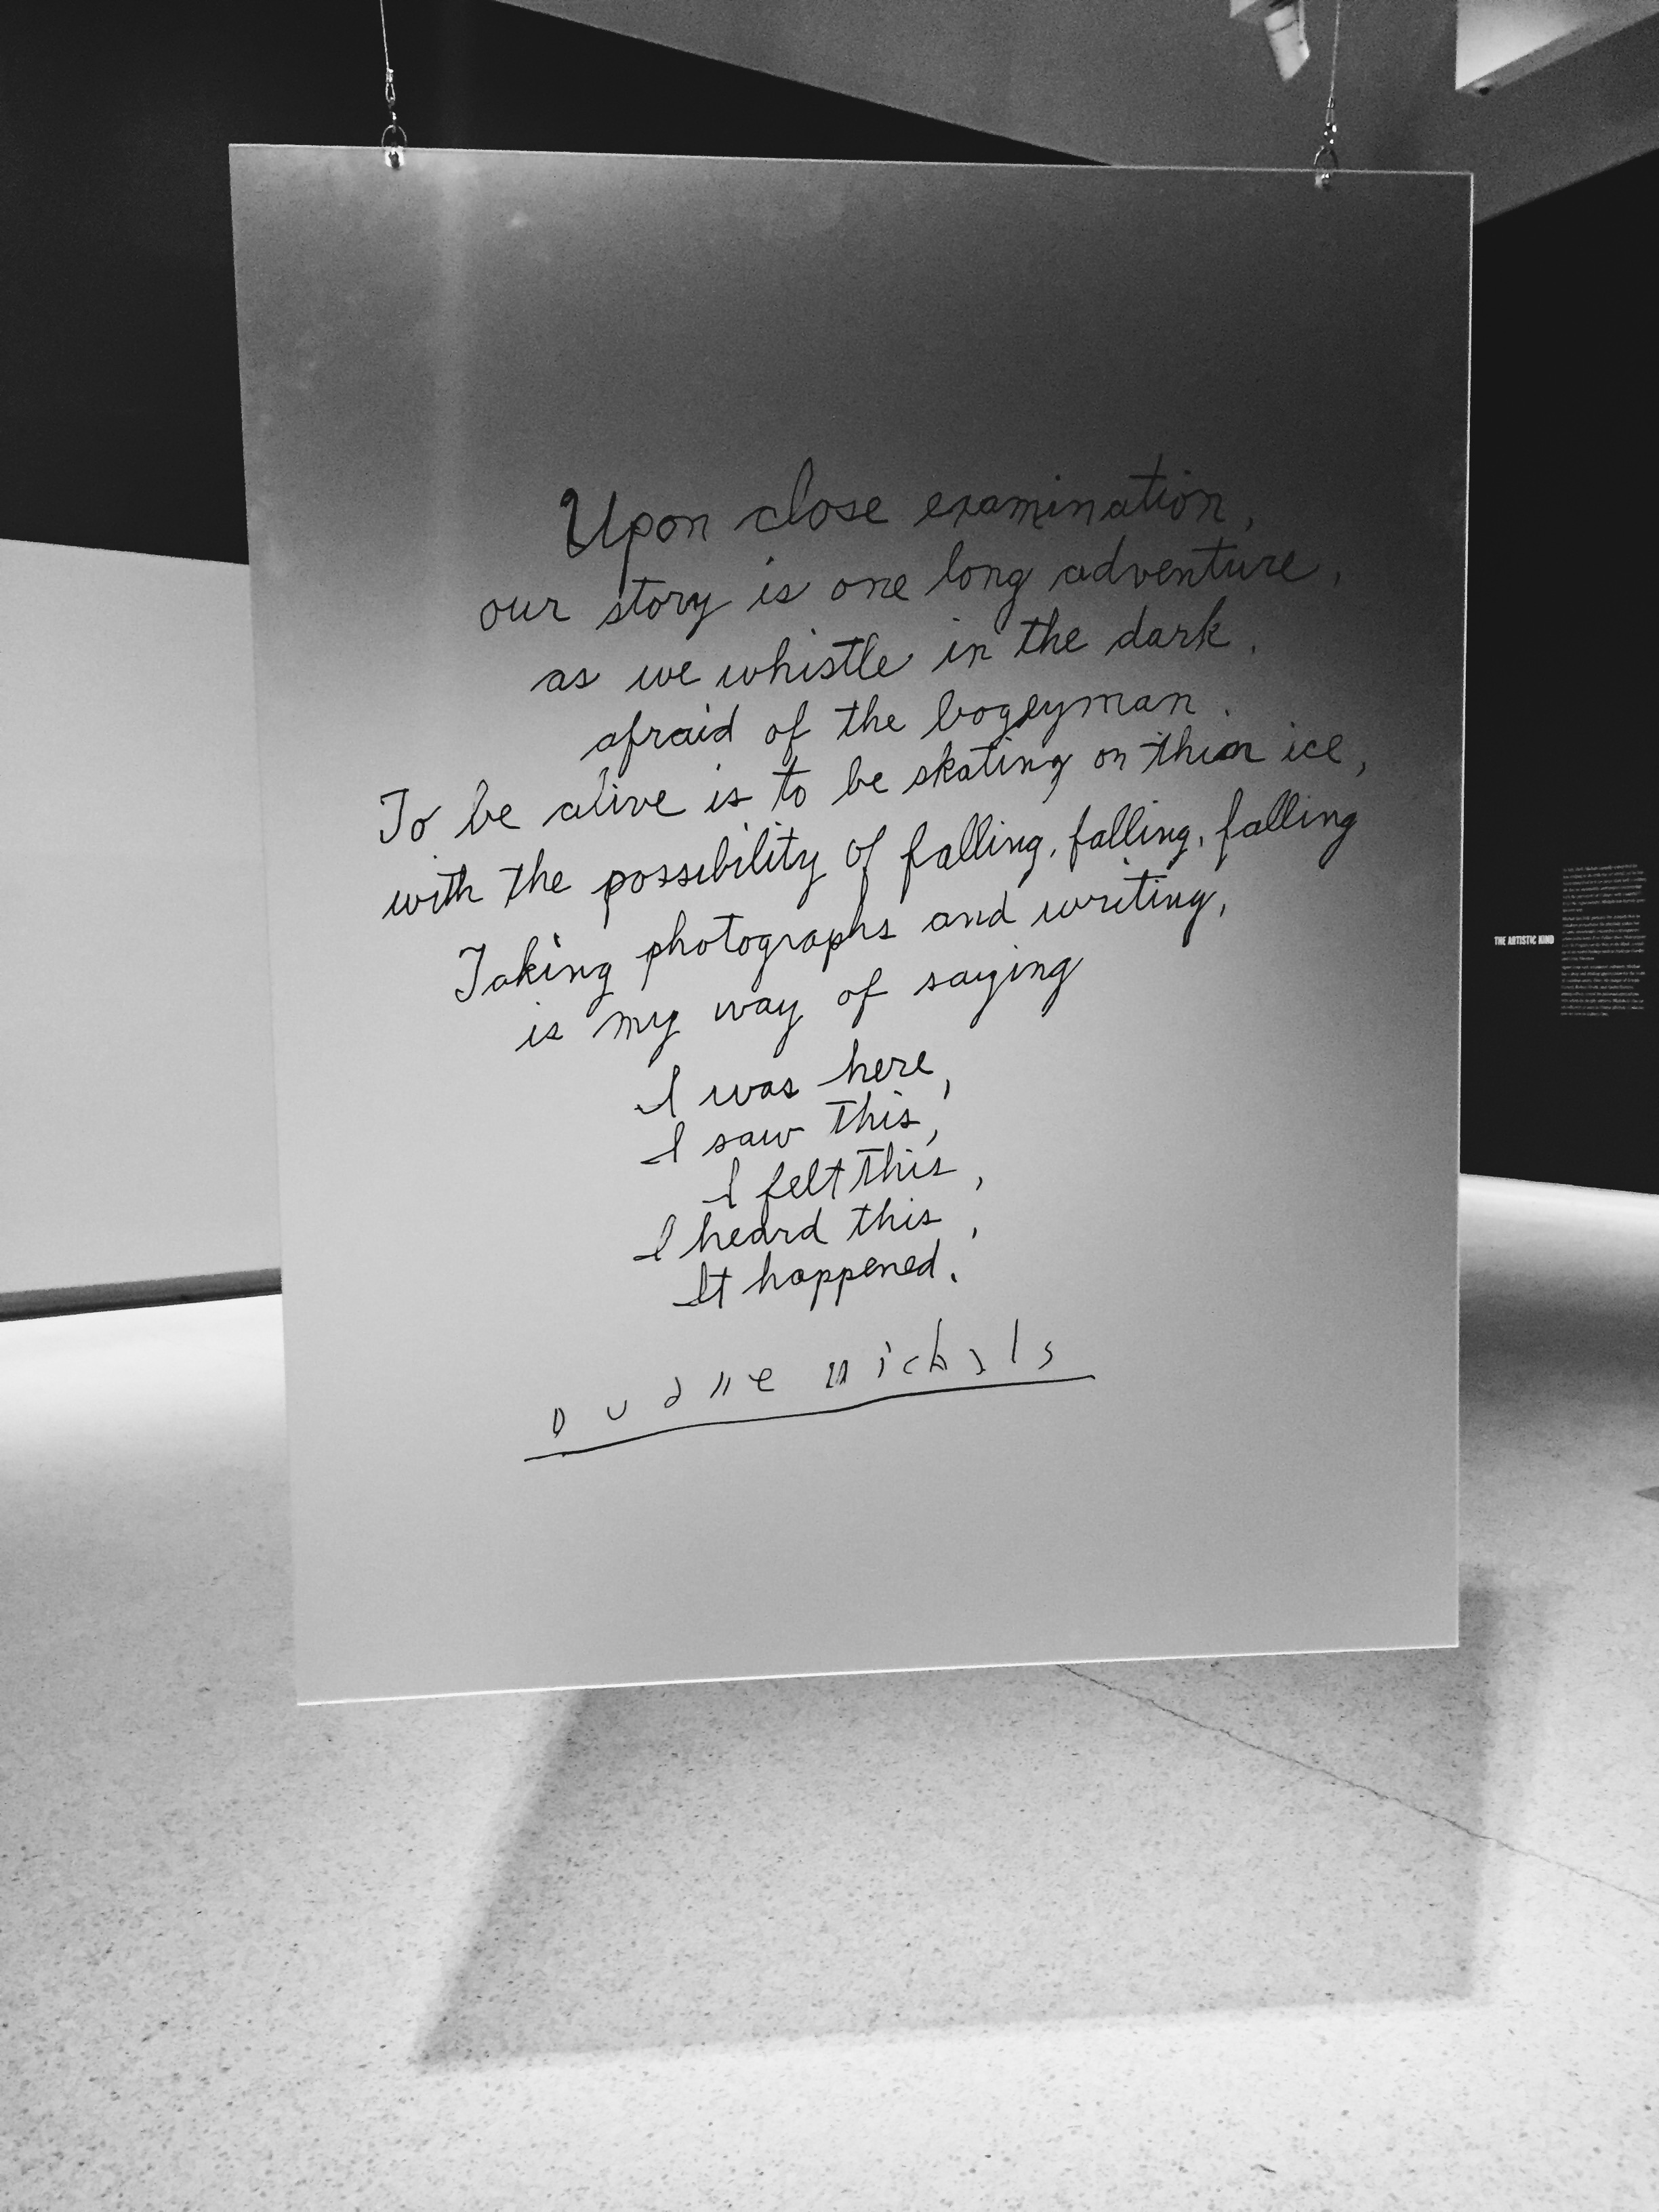 Quote from Duane Michals at The Carnegie Museum of Art